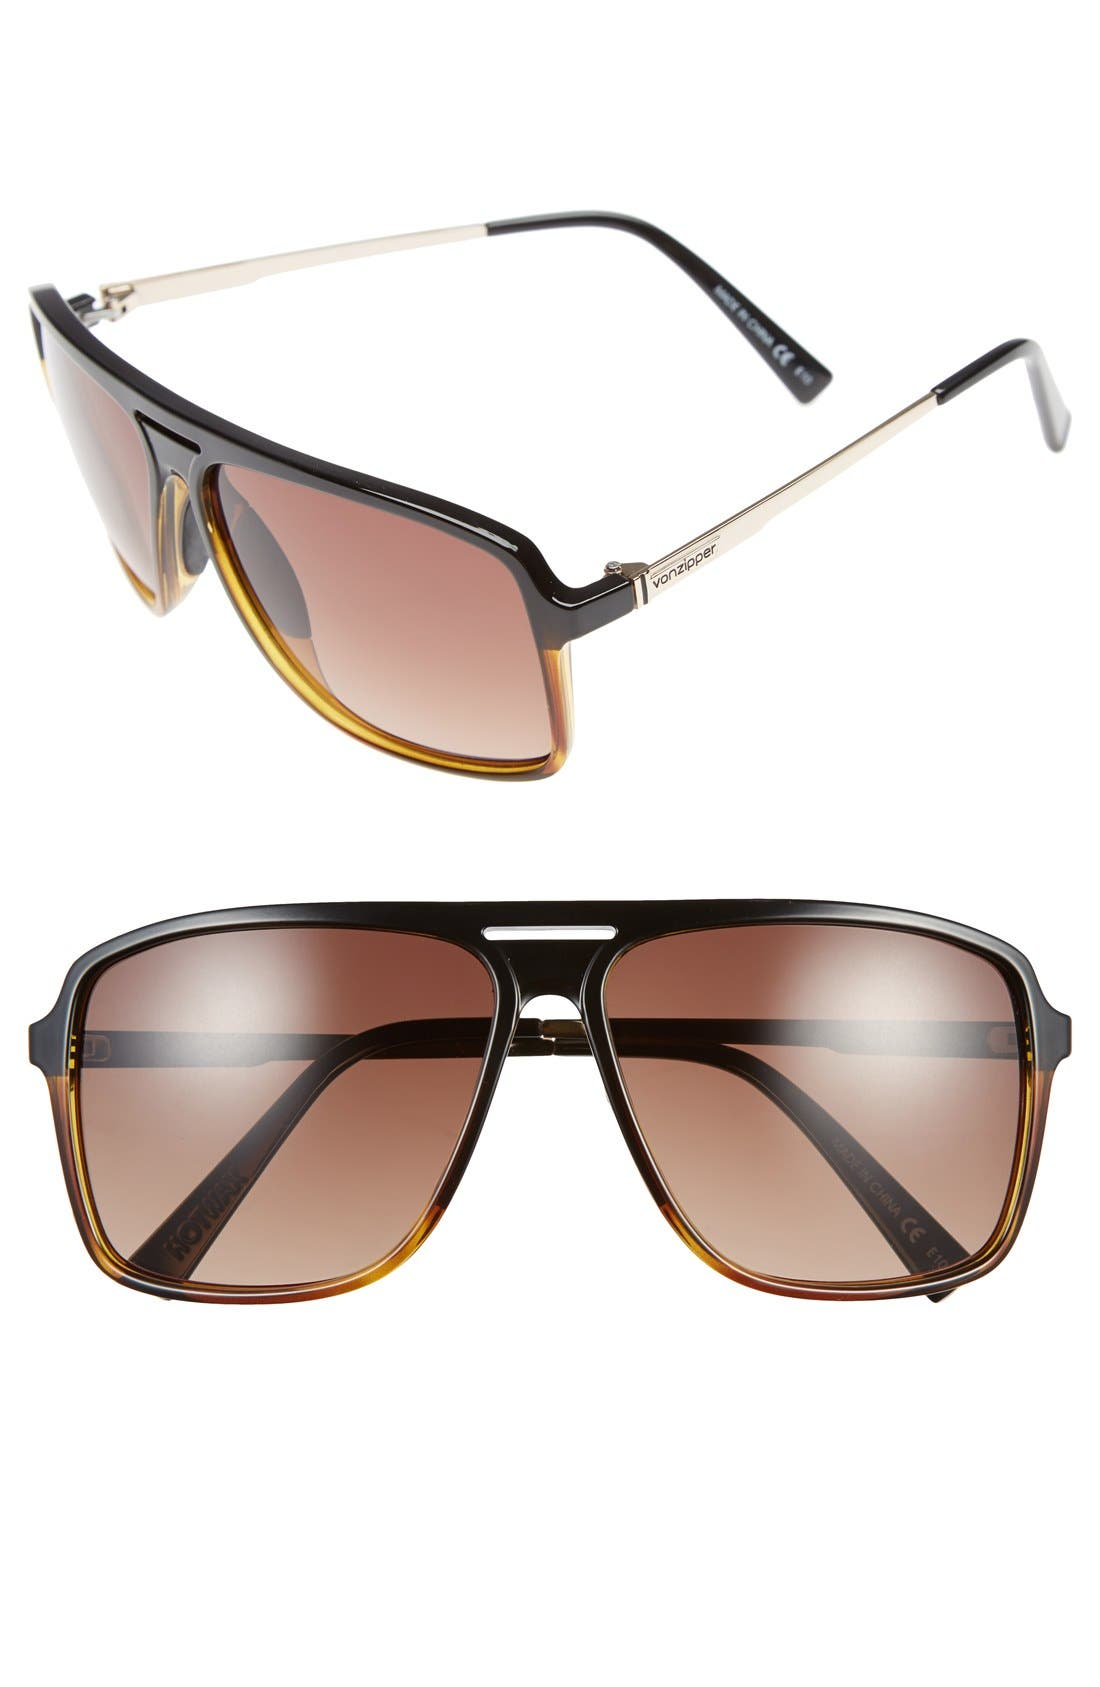 'Hotwax' 60mm Navigator Sunglasses,                             Main thumbnail 1, color,                             003